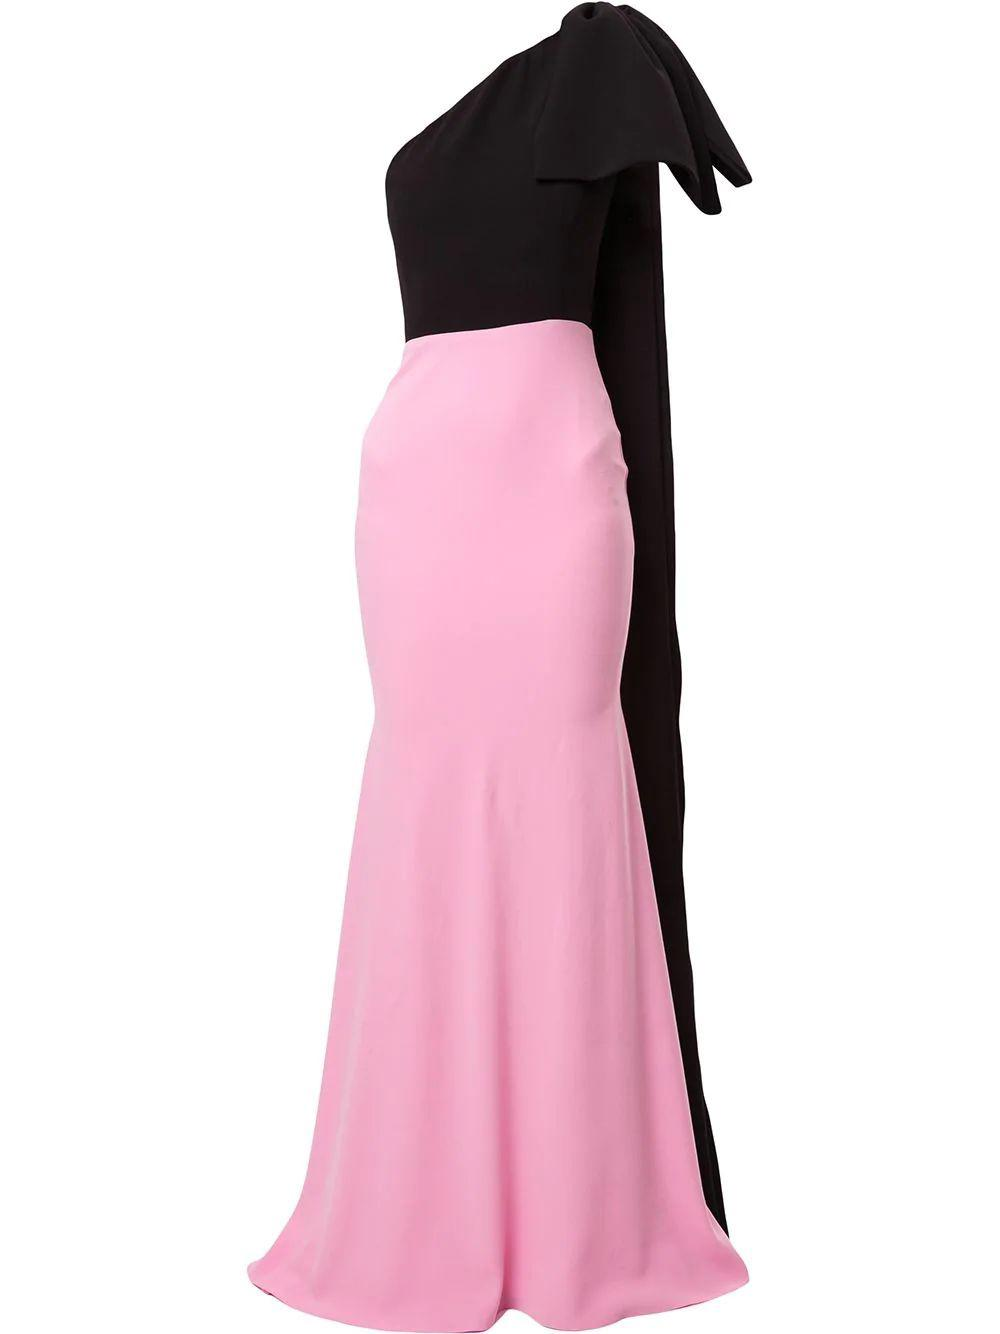 Anderson Satin Crepe Bow Cb Gown Item # D612